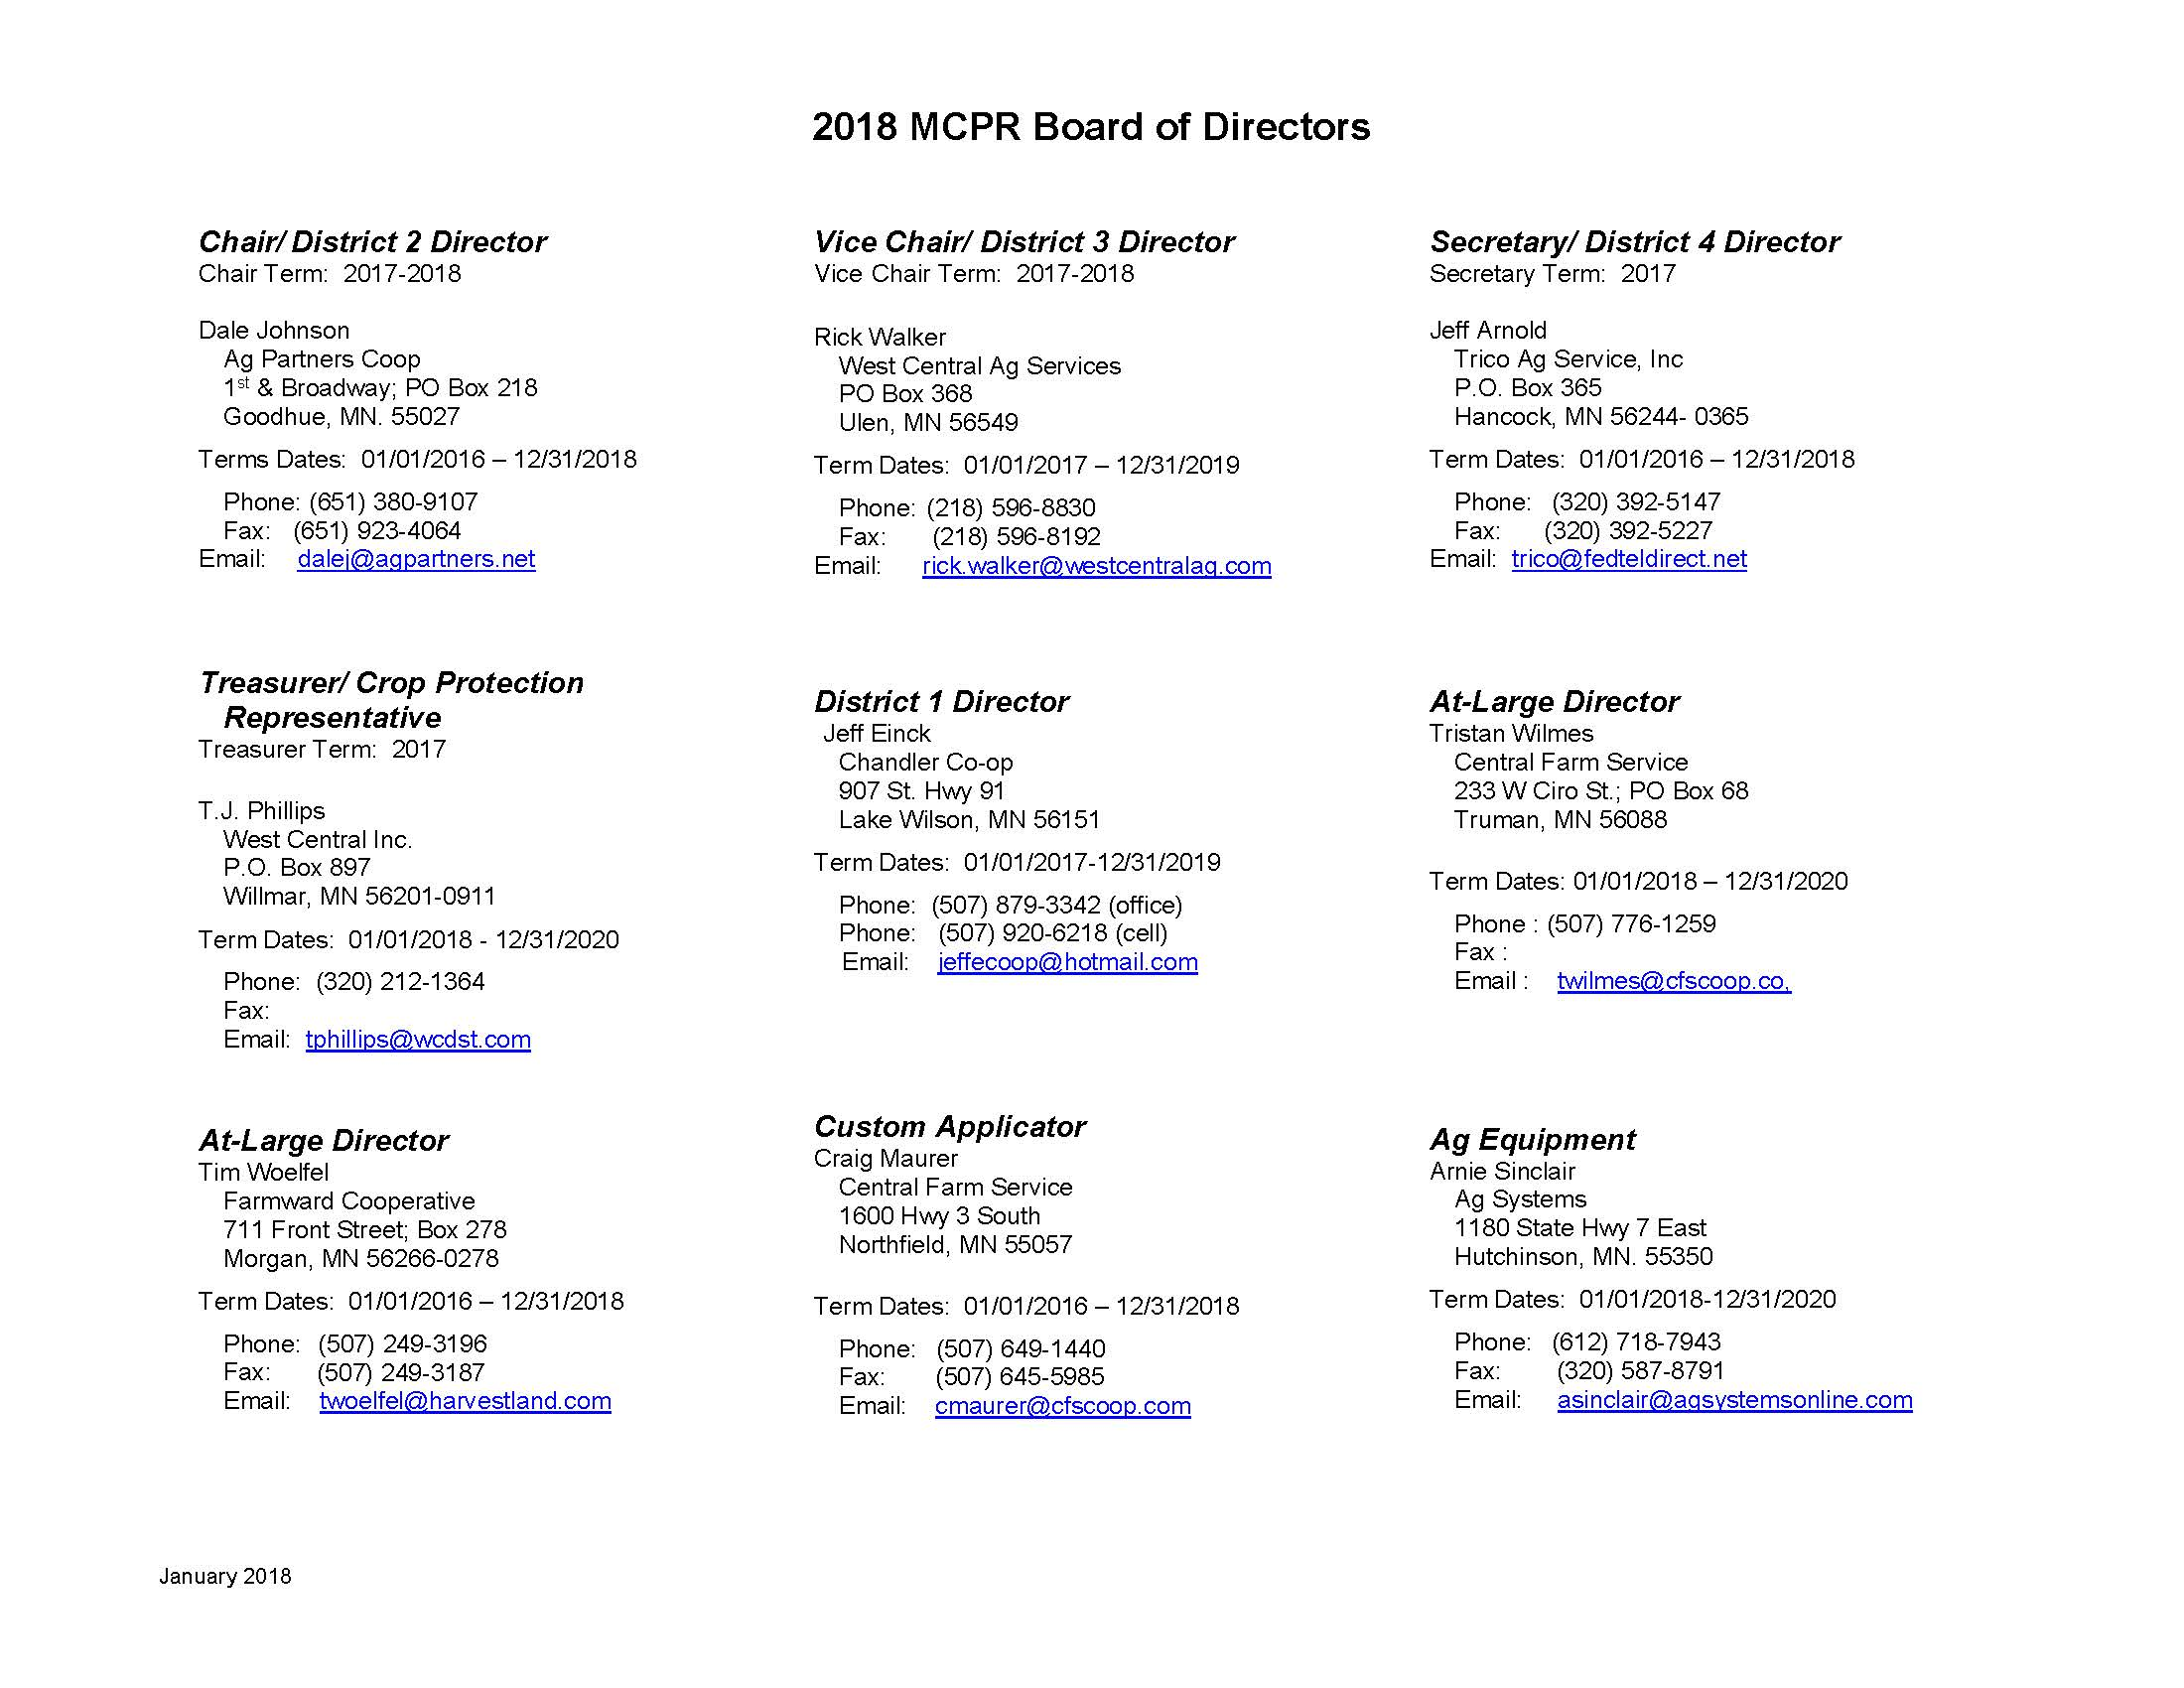 2018 MCPR Board of Directors_March2018_Page_1